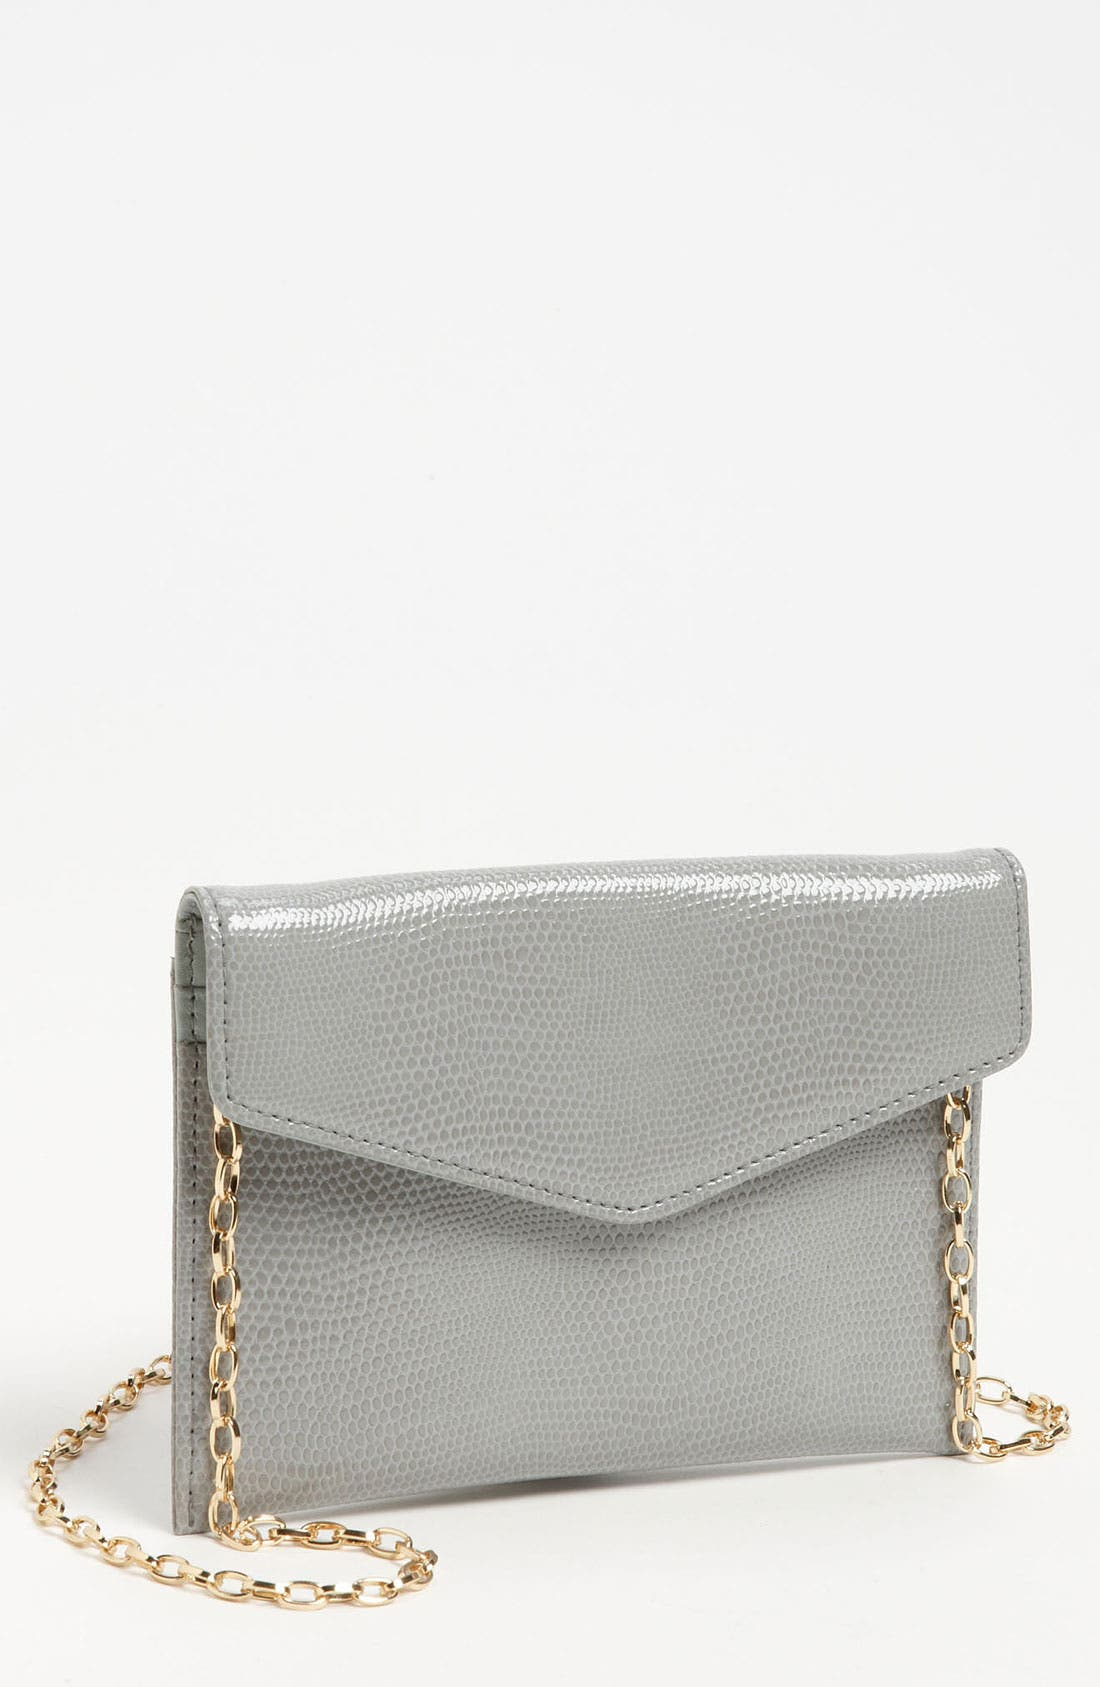 Main Image - Halogen 'Amy' Lizard Embossed Leather Crossbody Bag